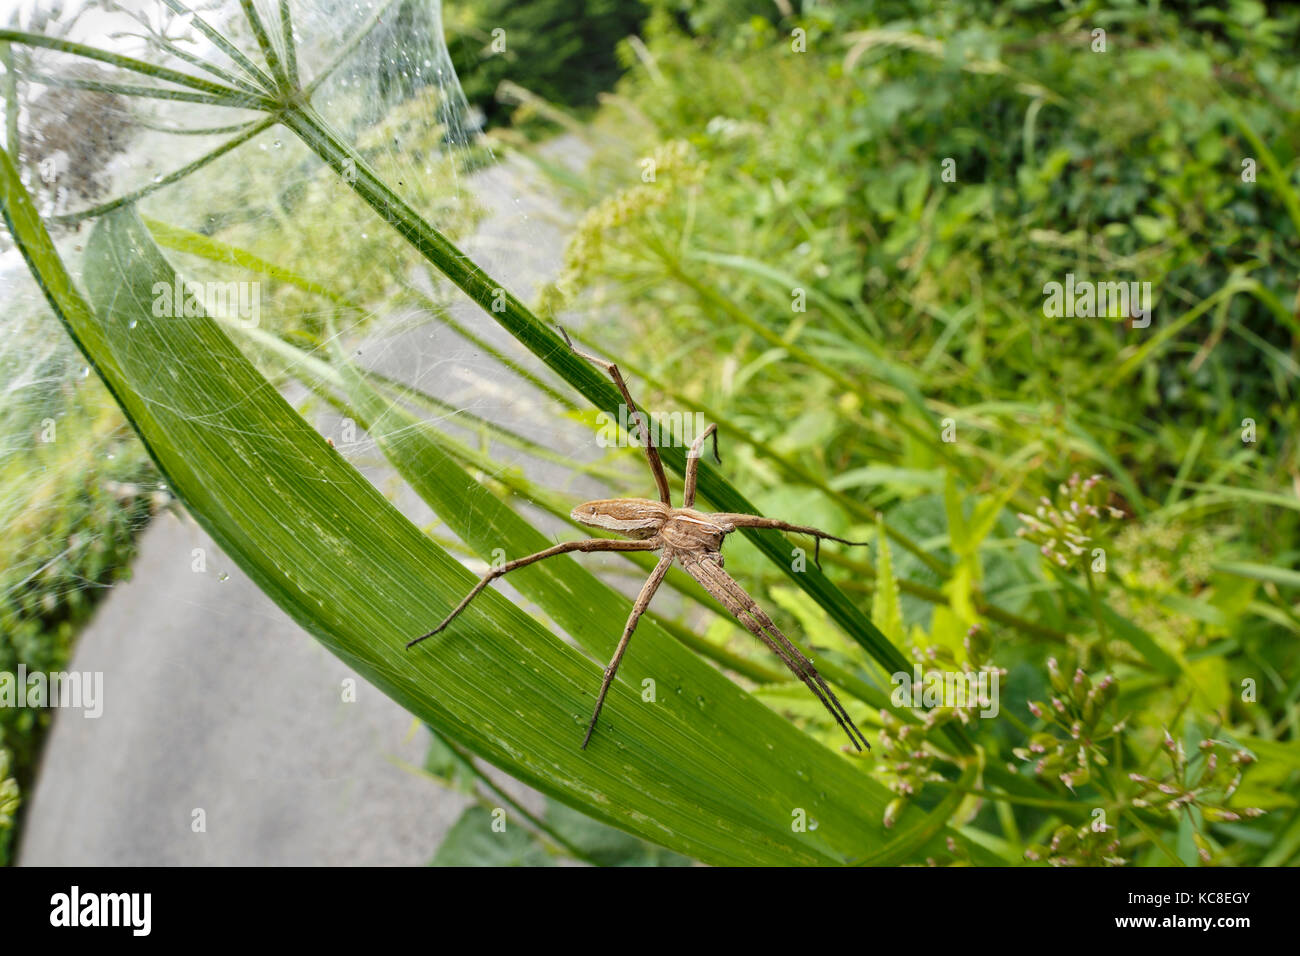 Nursery Web Spider, Pisaura mirabilis, guarding nest of spiderlings. Tintern, Monmouthshire, Wales, June. - Stock Image